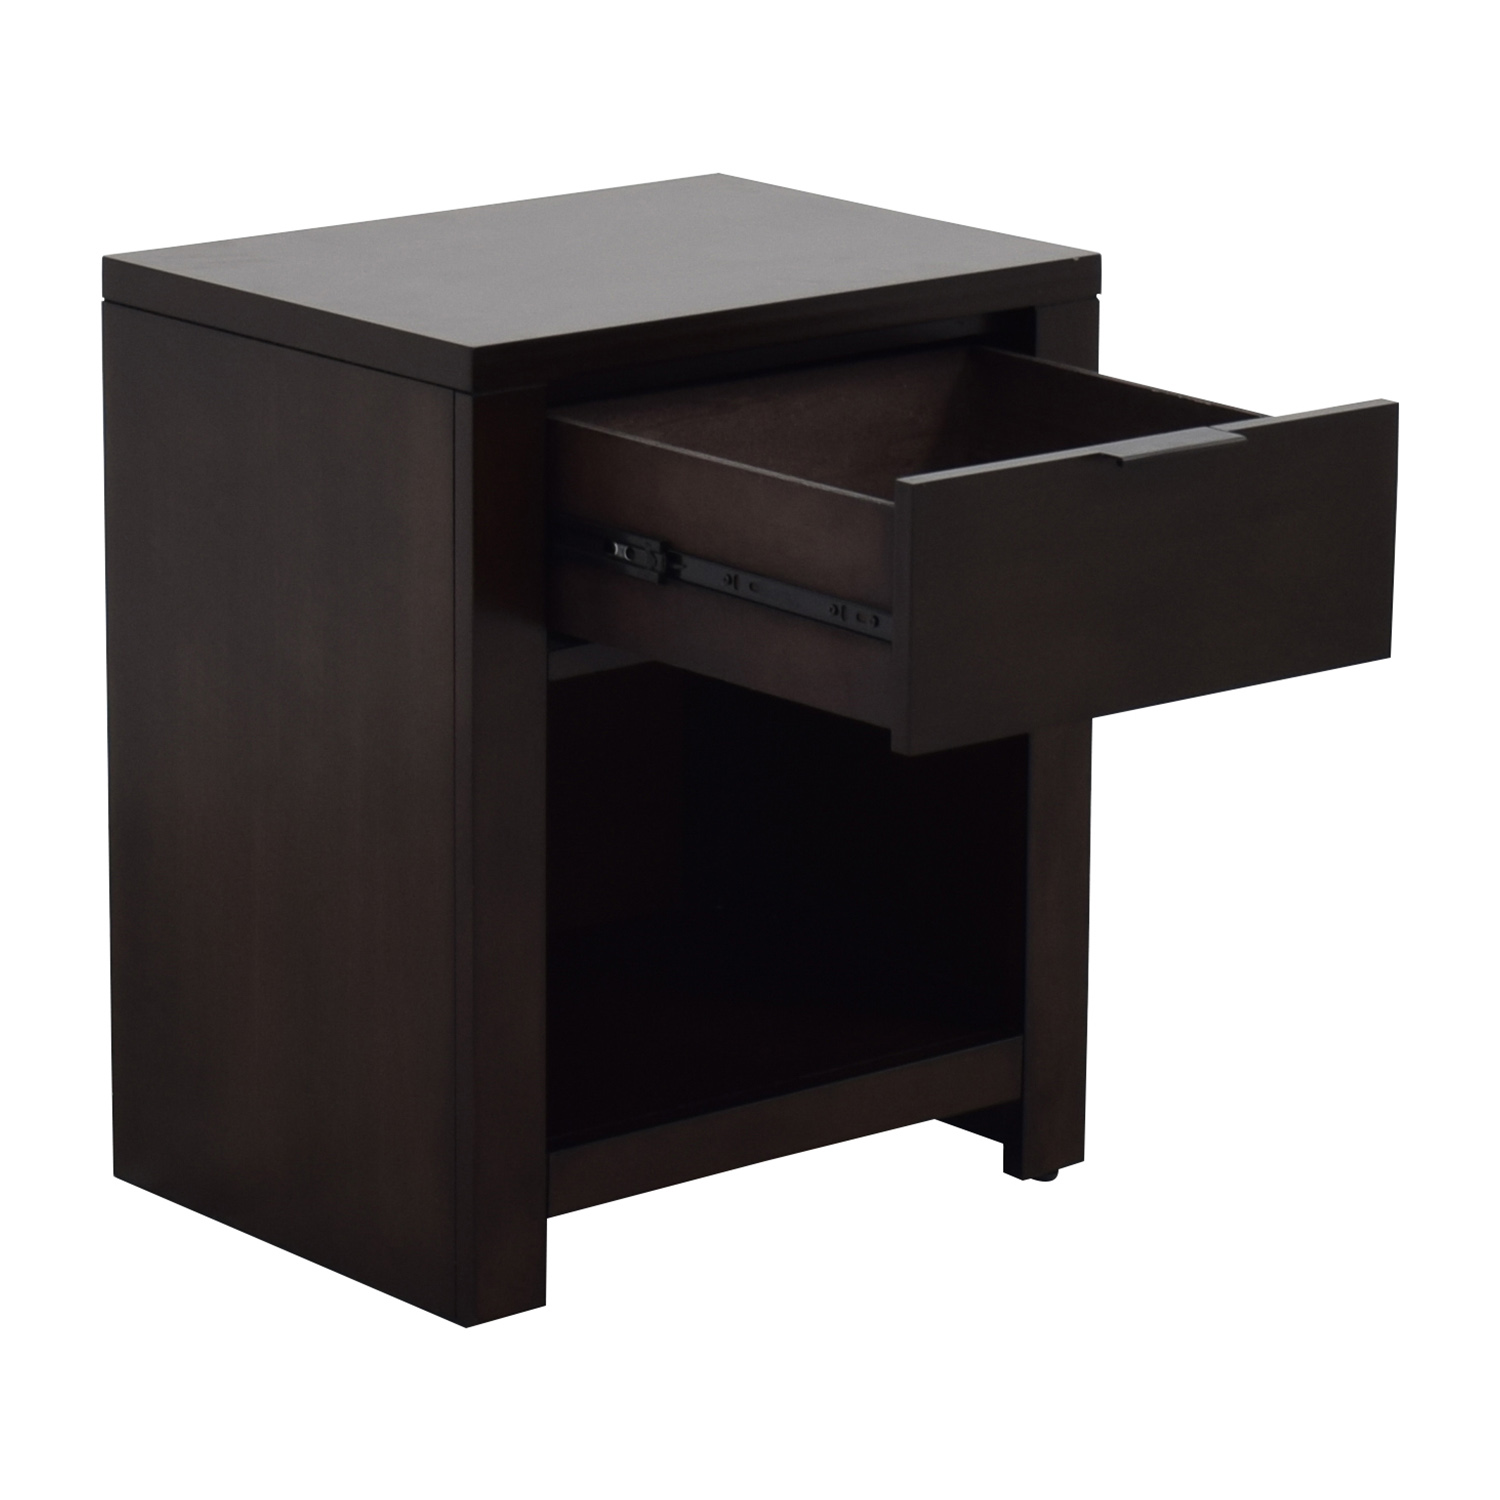 shop Macys Tribeca Nightstand in Mocha Macys